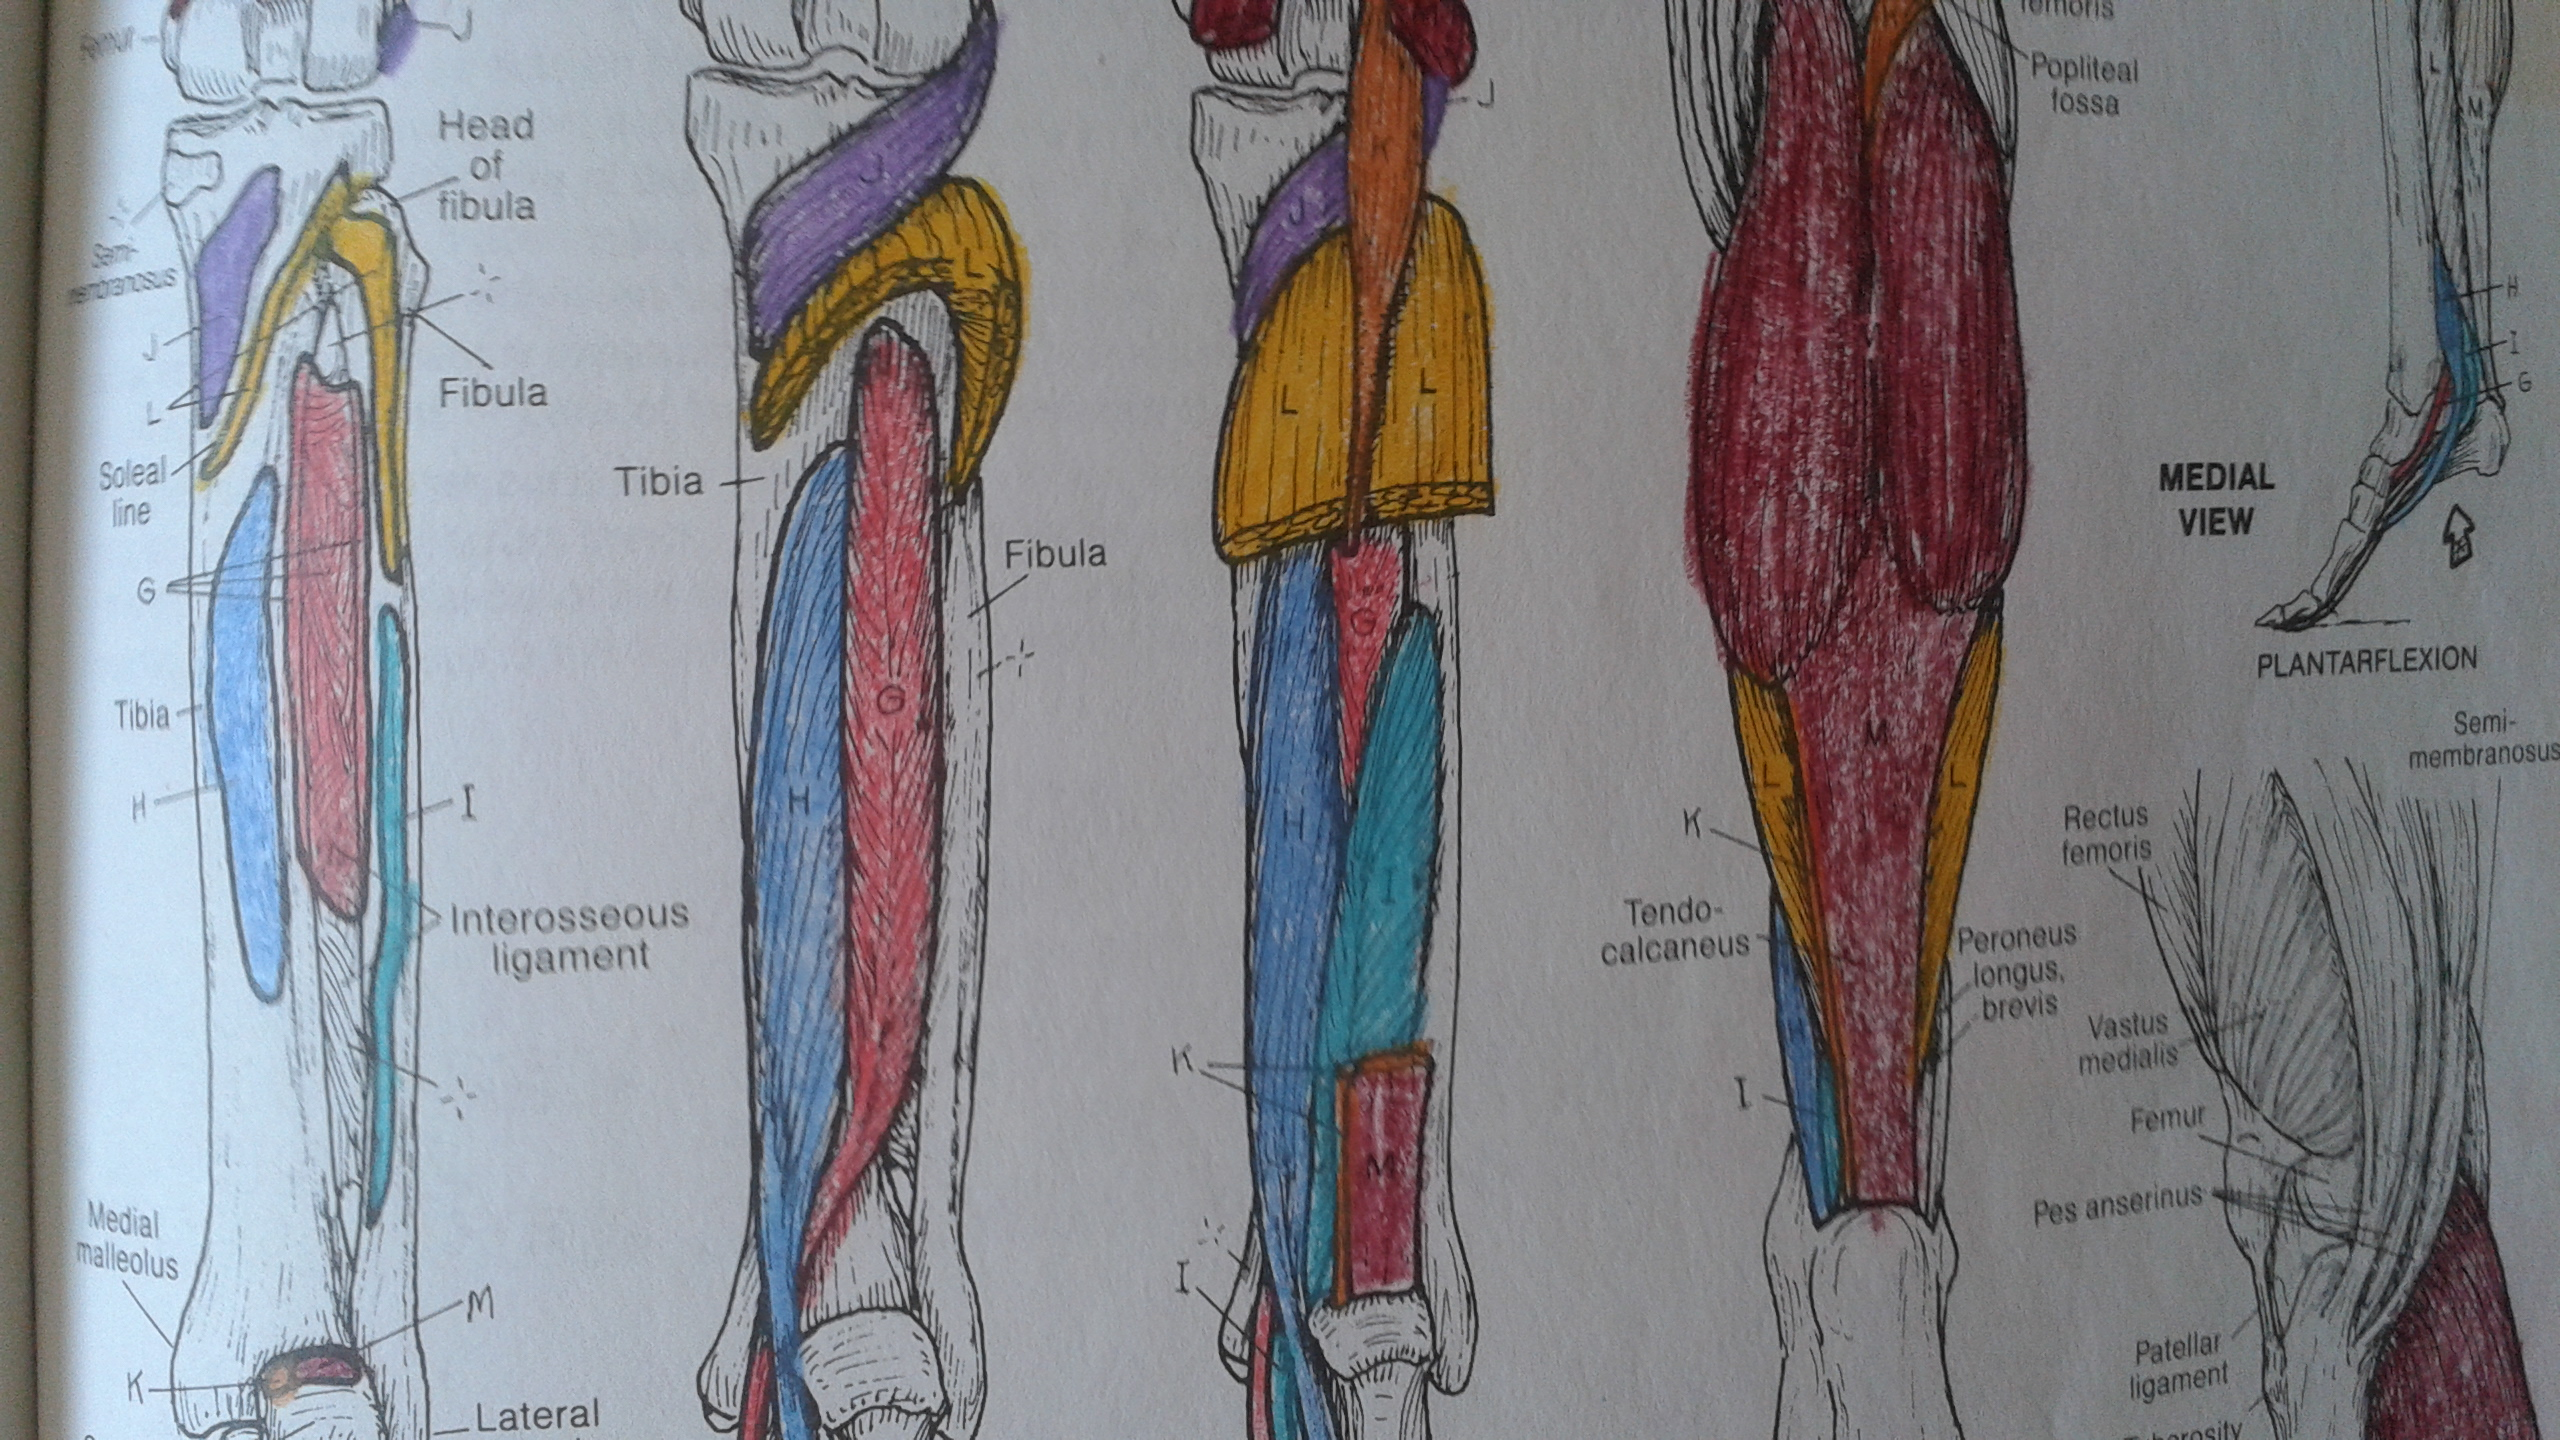 96 The Anatomy Coloring Book Kapit Pdf Download